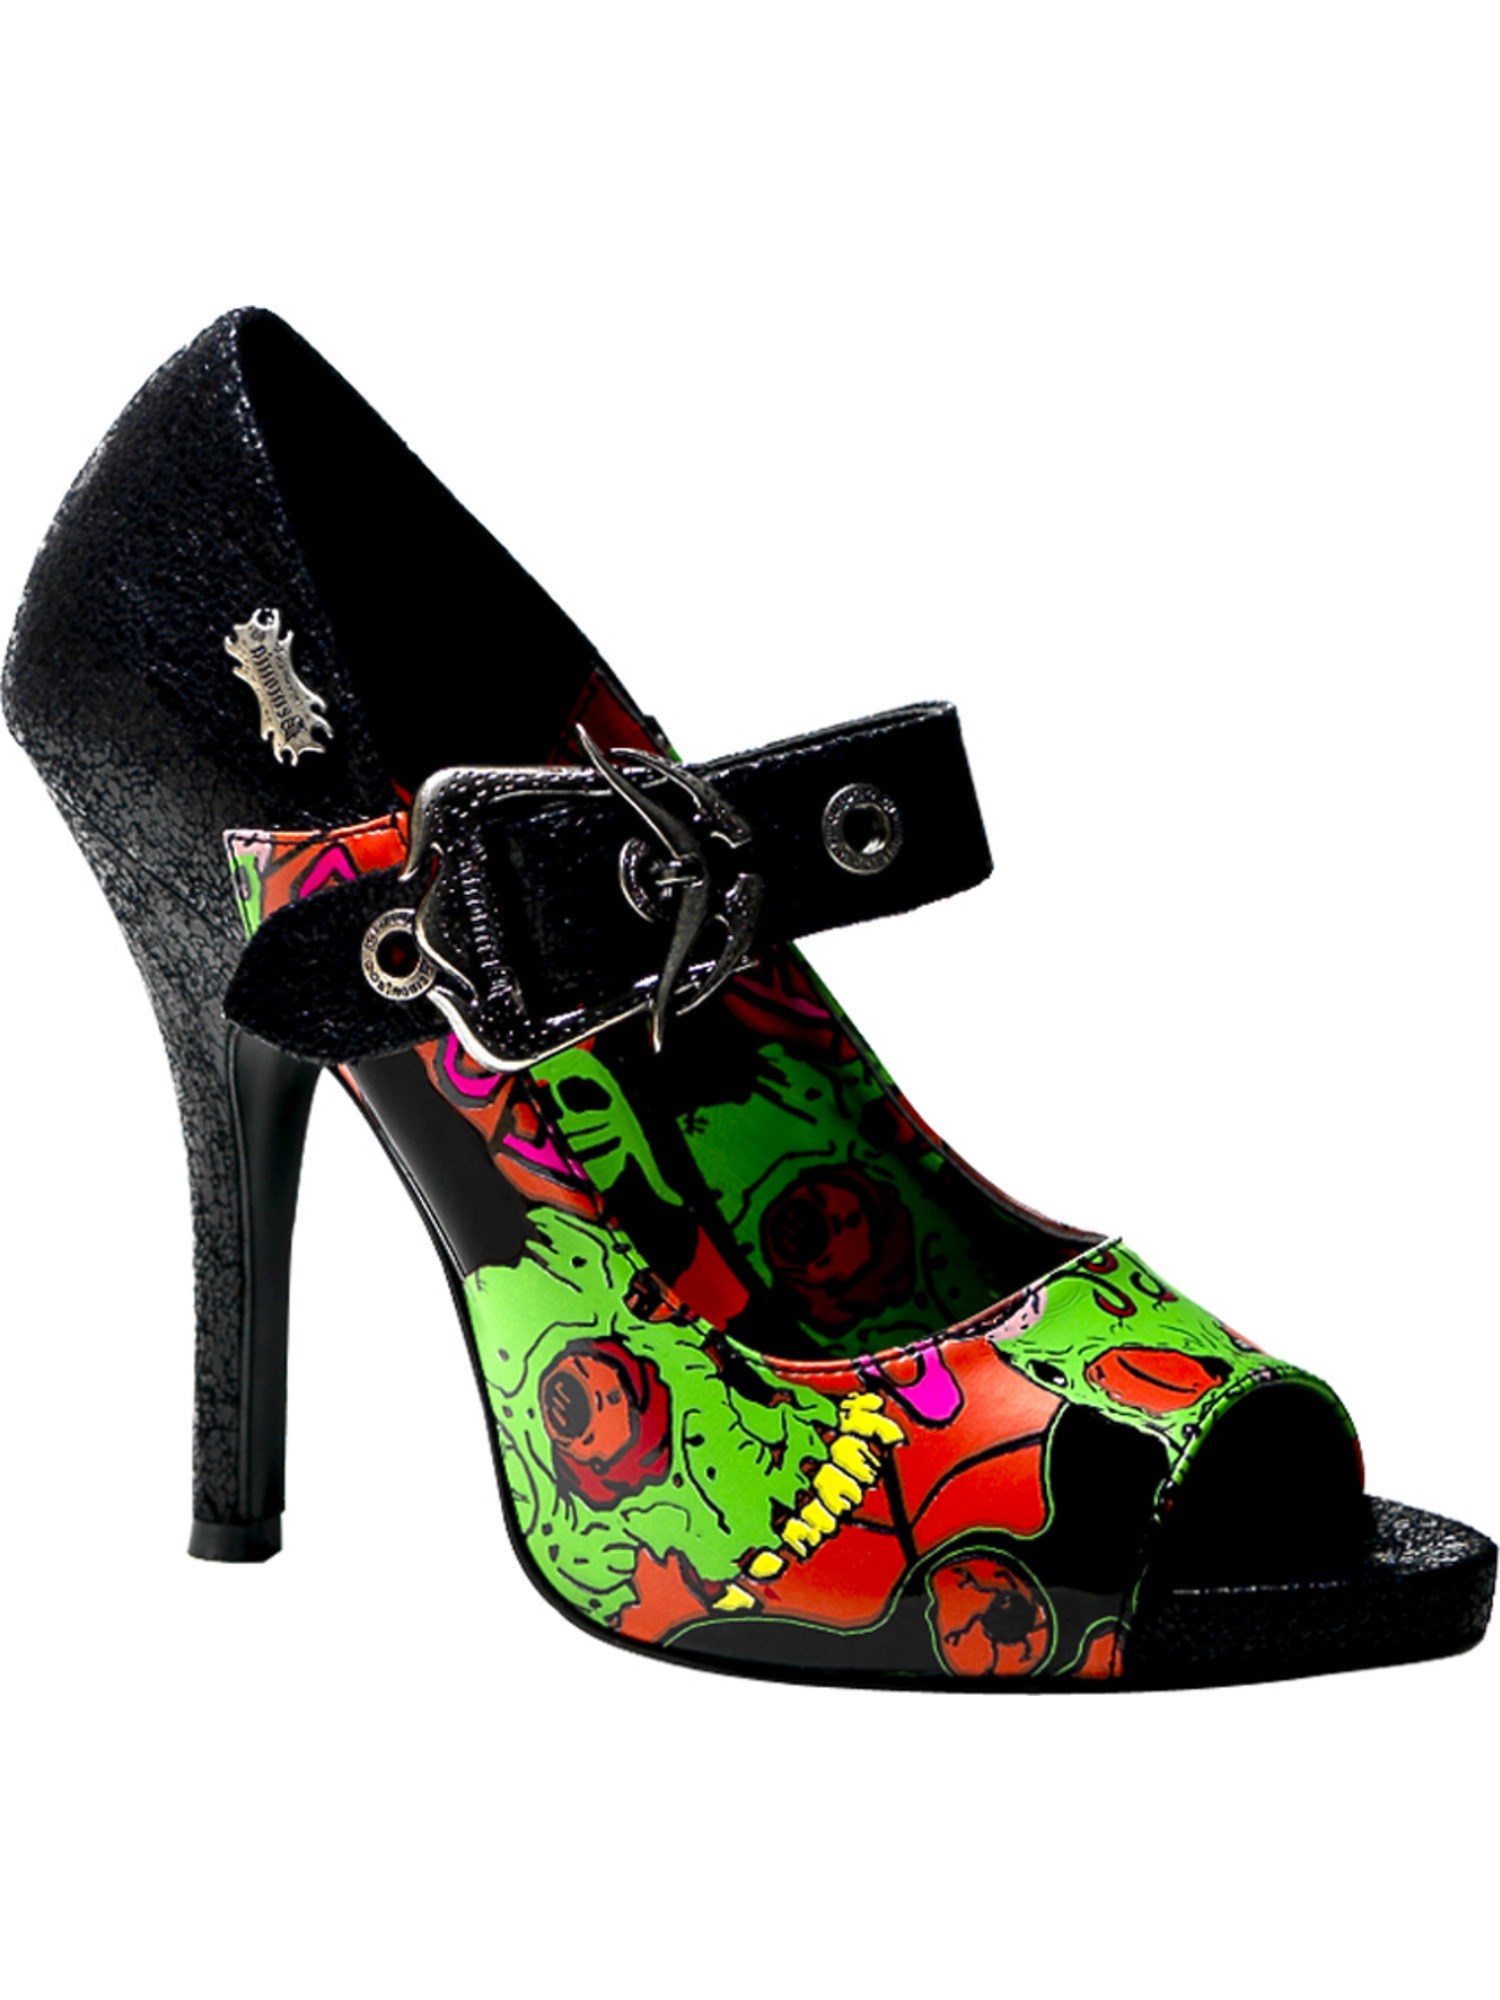 4 Screen 1/2 Inch Mary Jane Pumps Shoes Peep Toe Screen 4 Print Zombies Horror Bloody 776945